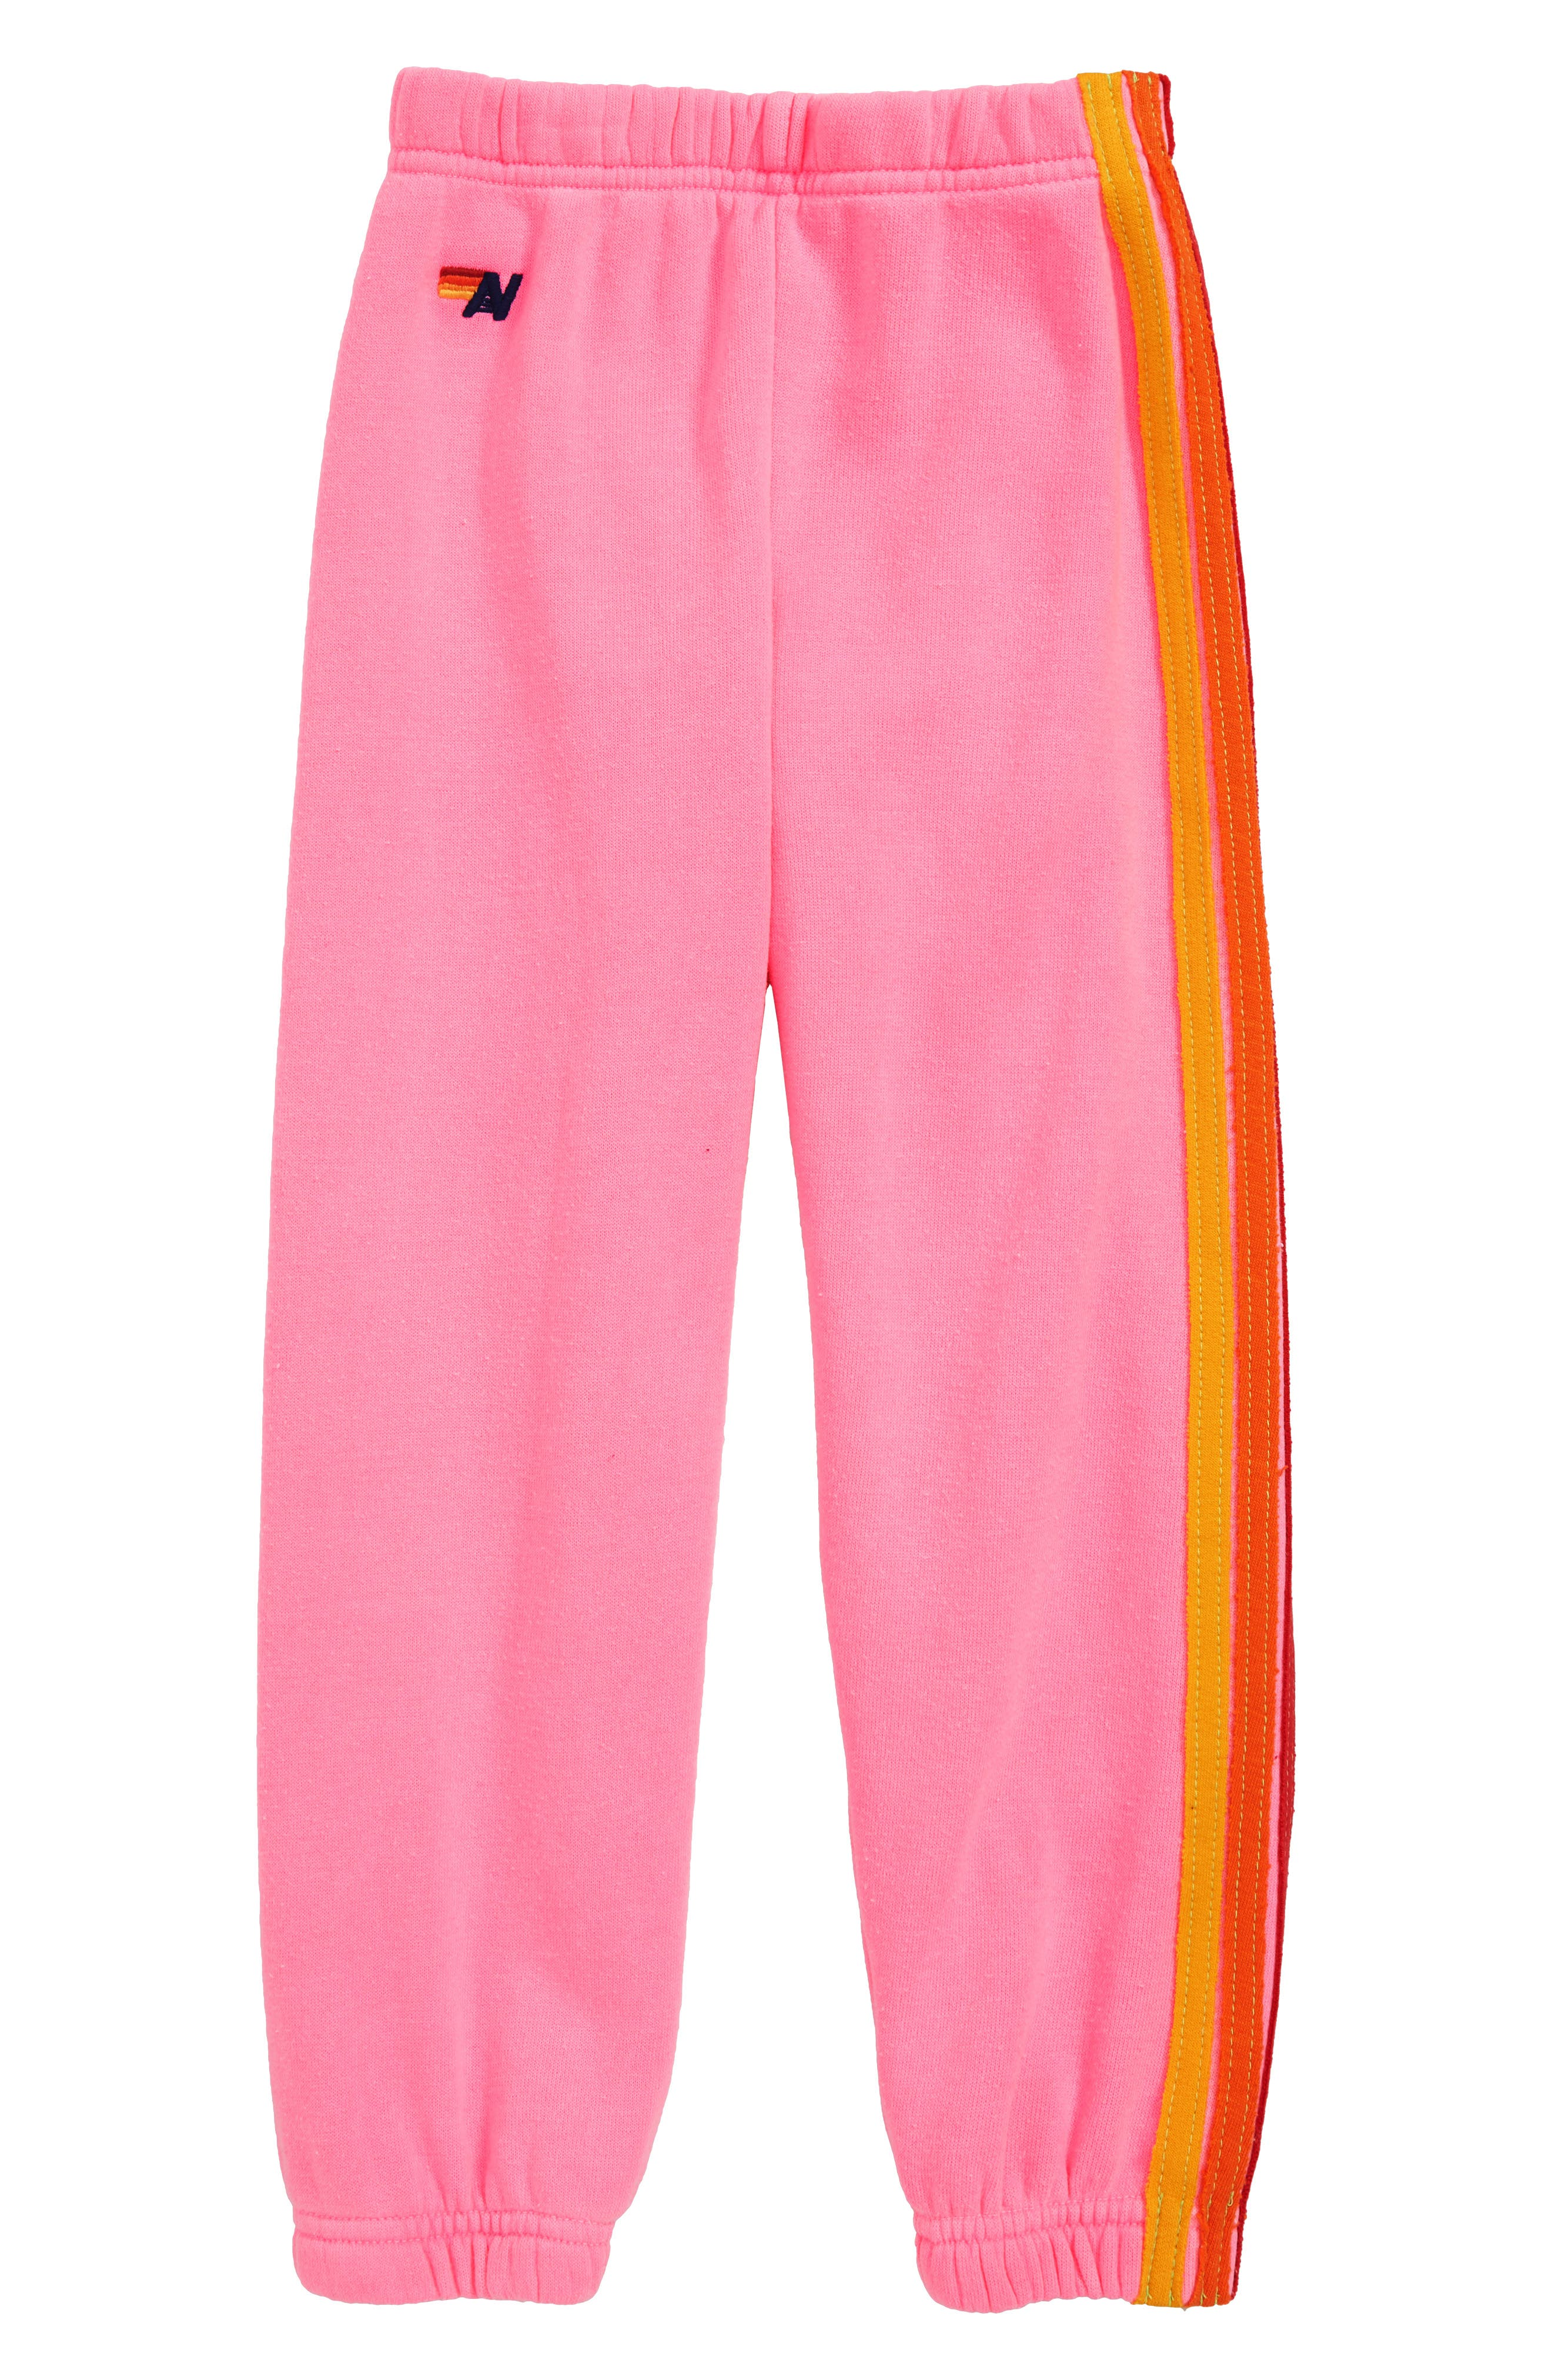 5-Stripe Sweatpants,                         Main,                         color, NEON PINK